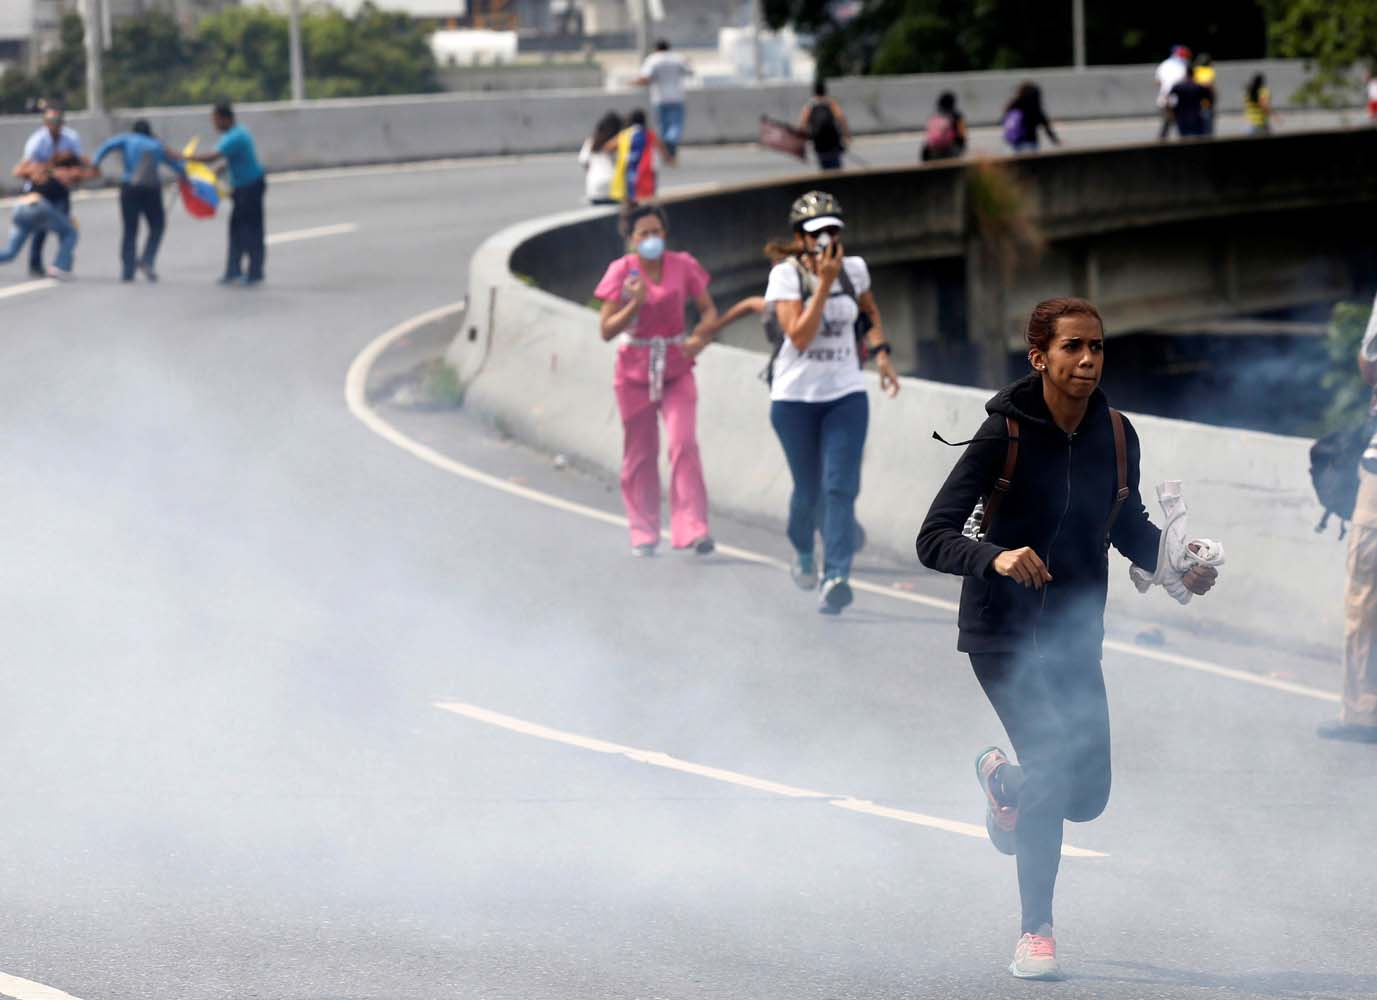 Demonstrators run away while clashing with riot security forces during a rally against President Nicolas Maduro in Caracas, Venezuela, May 24, 2017. REUTERS/Marco Bello